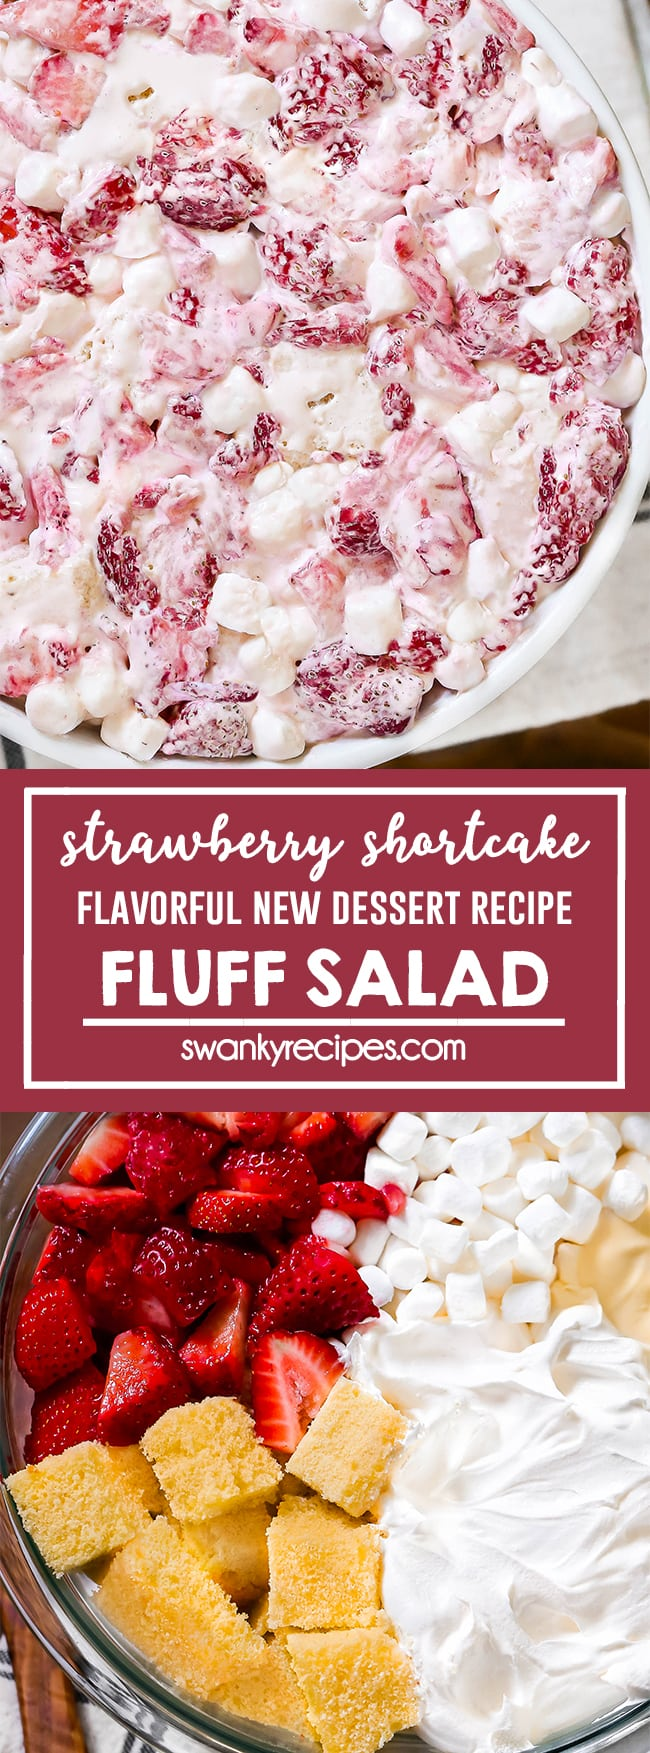 "Quick Strawberry Shortcake Fluff Salad - A white bowl with chunks of strawberries, mini marshmallows, and yellow pound cake in a creamy white whipped cream topping. Text in pink boarder in center reads strawberry shortcake ""flavorful new dessert recipe"" fluff salad. Second image is a clear bowl with chunks of yellow pound cake, slices of fresh strawberries, a handful of mini marshmallows, and whipped cream on a wooden board."